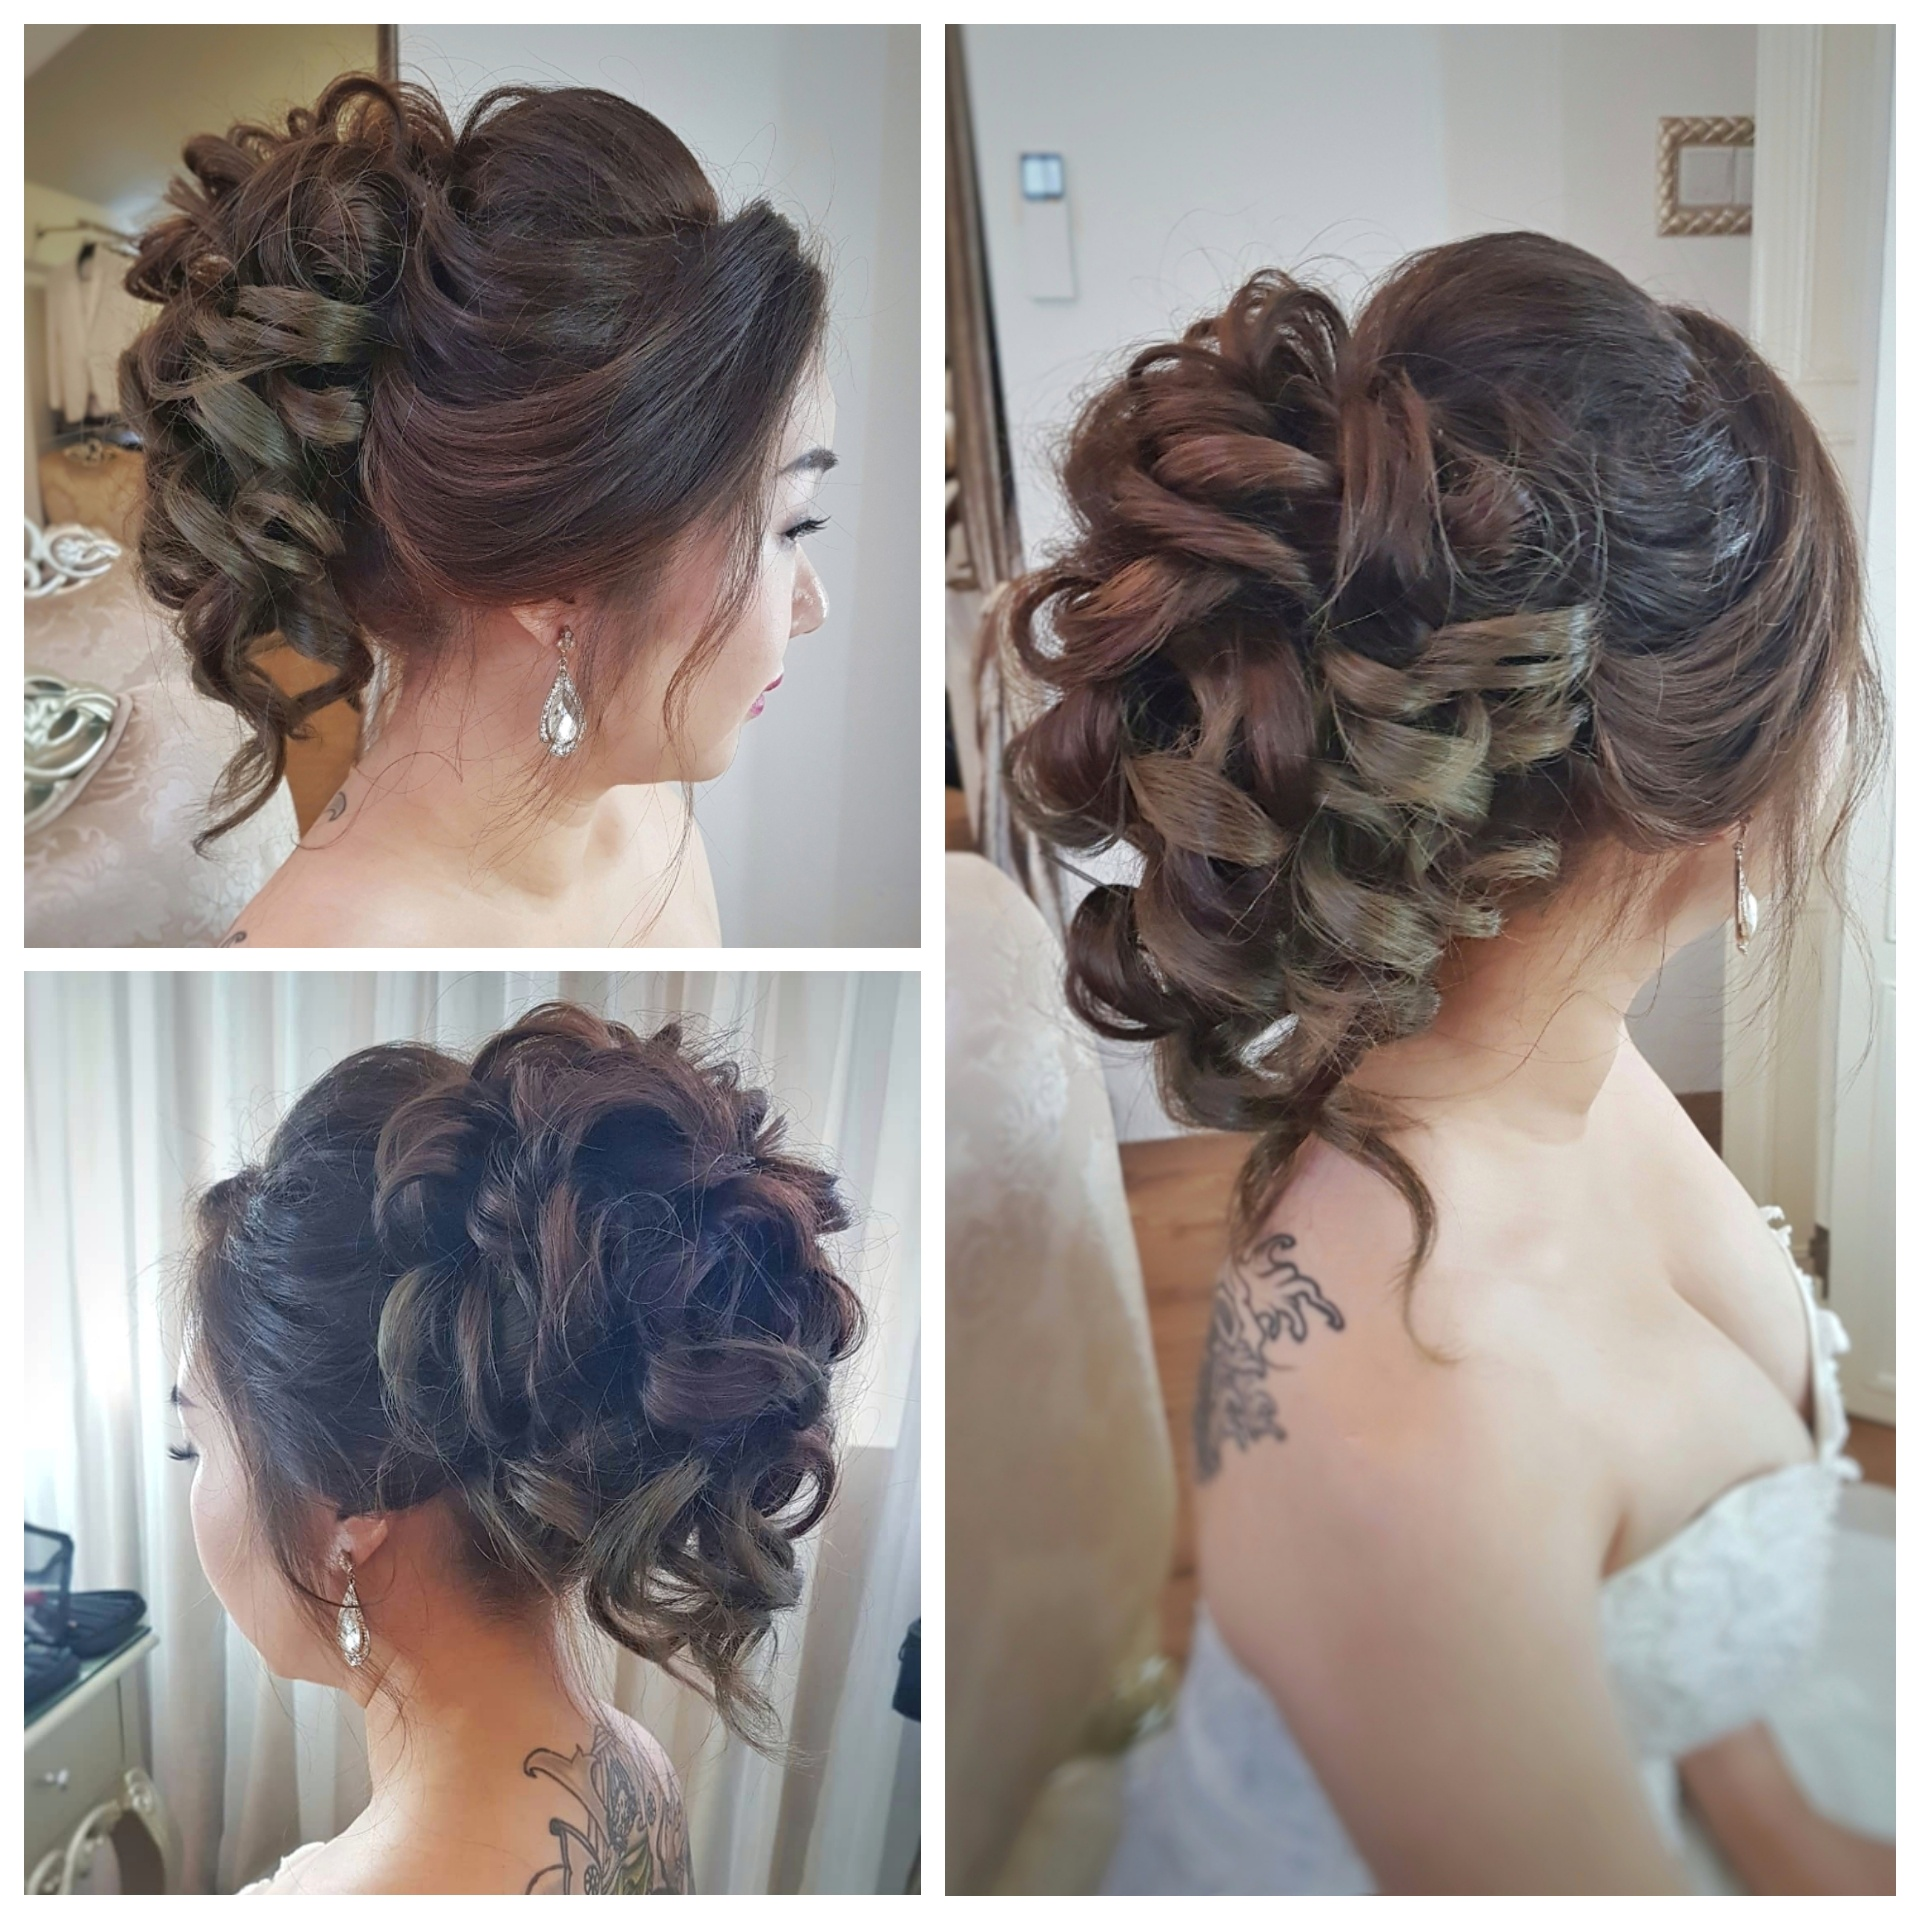 Voluminous updo with loose curls